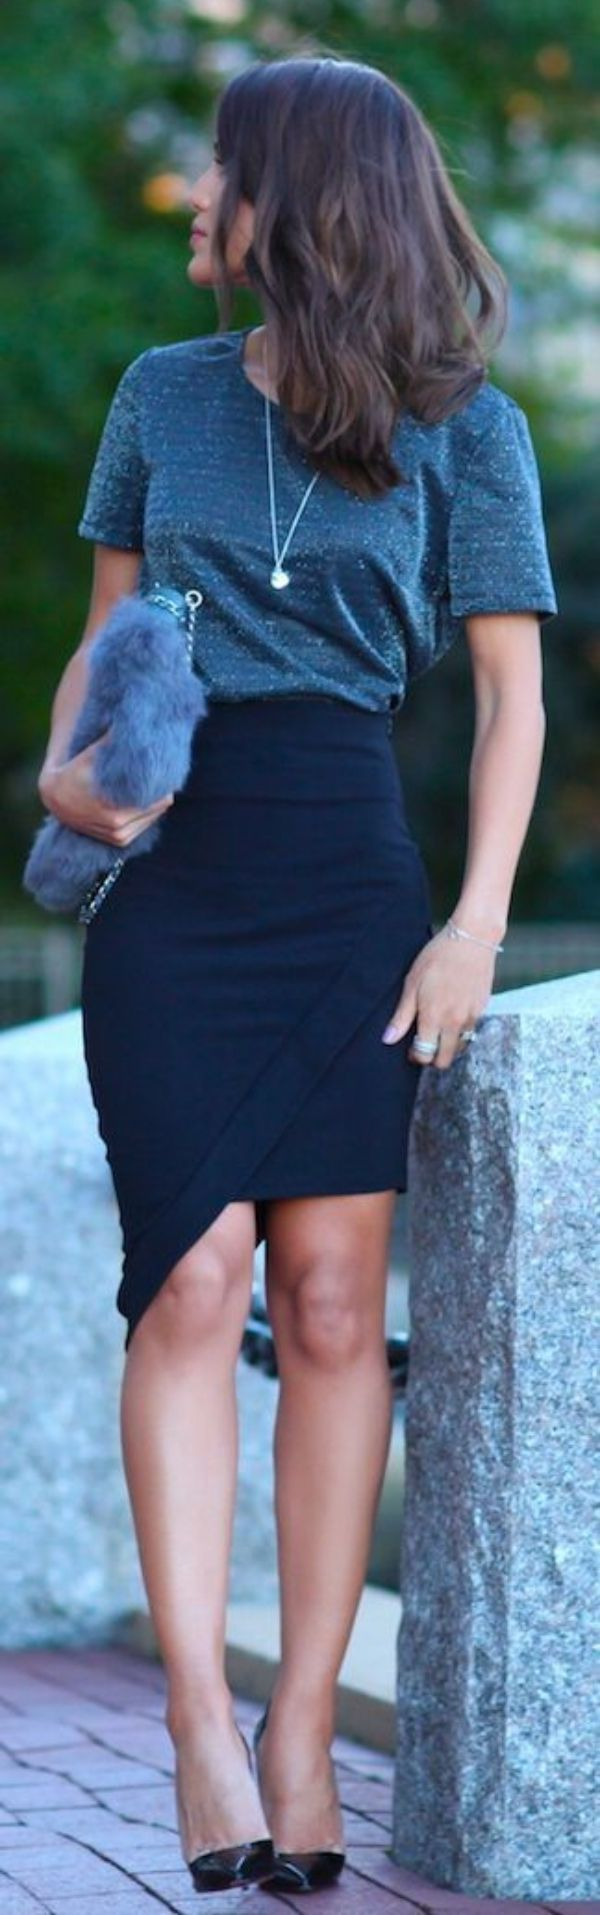 7fb6f4f241f2  3 DRAPE SKIRTS ARE JUST AWESOME  3 45 Casual Summer Work Outfits To Wear  To Office